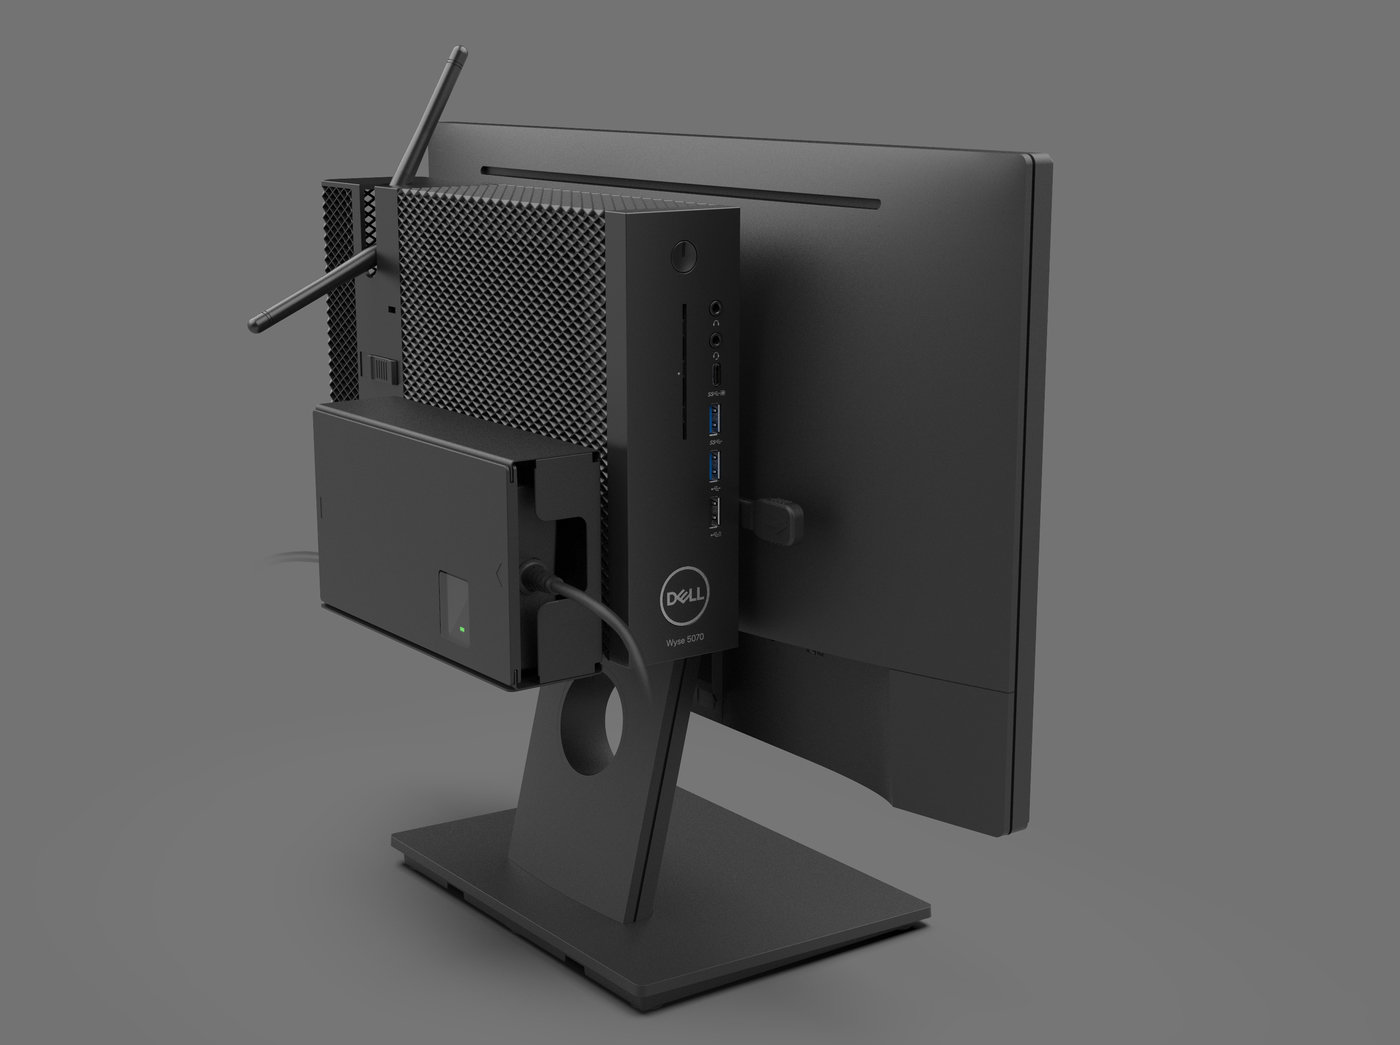 Dell Wyse 5070 and mounting accessories by Sachin Mistry at Coroflot com